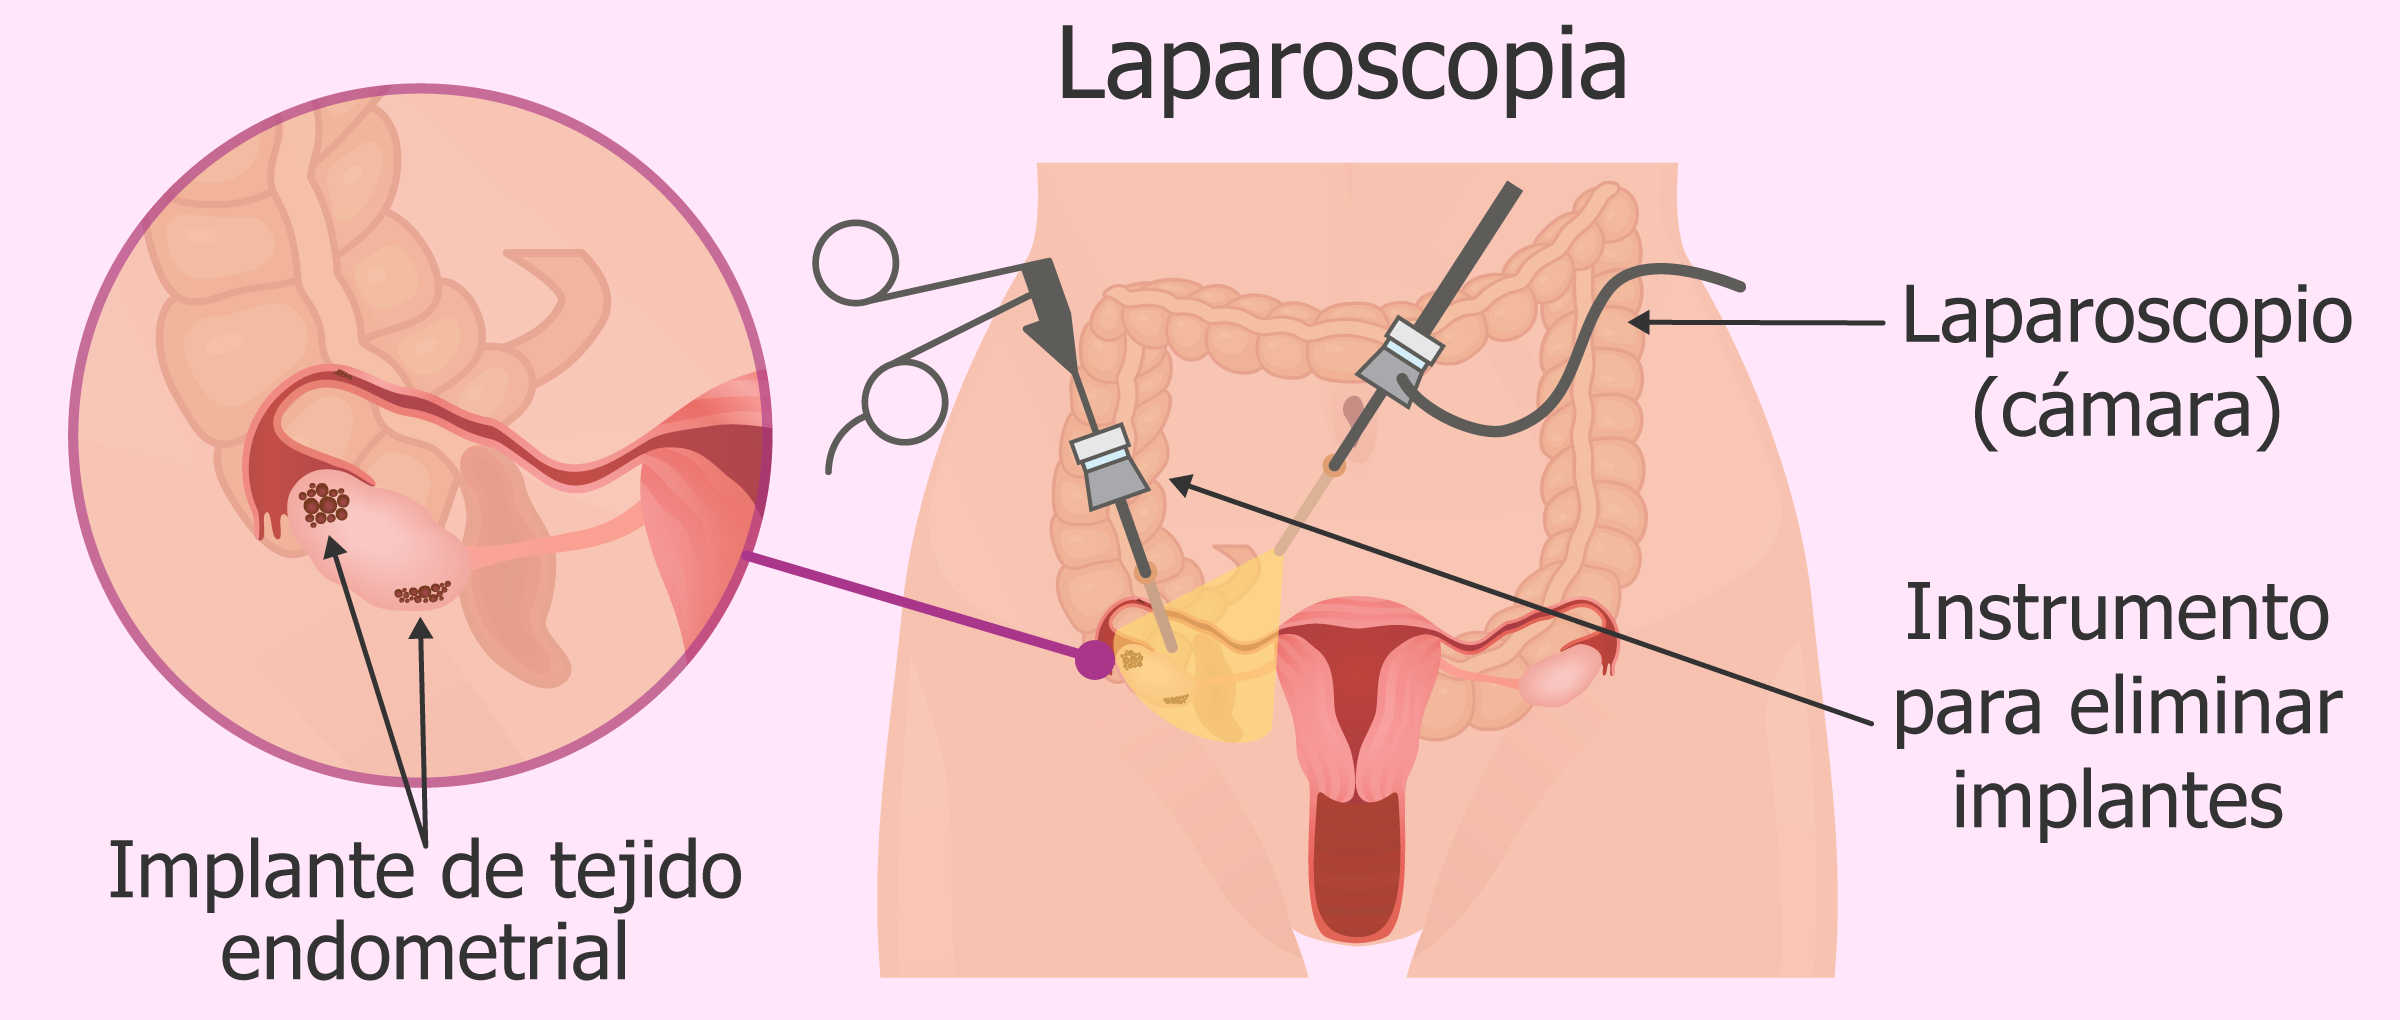 laparoscopia-para-diagnosticar-endometriosis-y-eliminar-implantes-endometriales.png